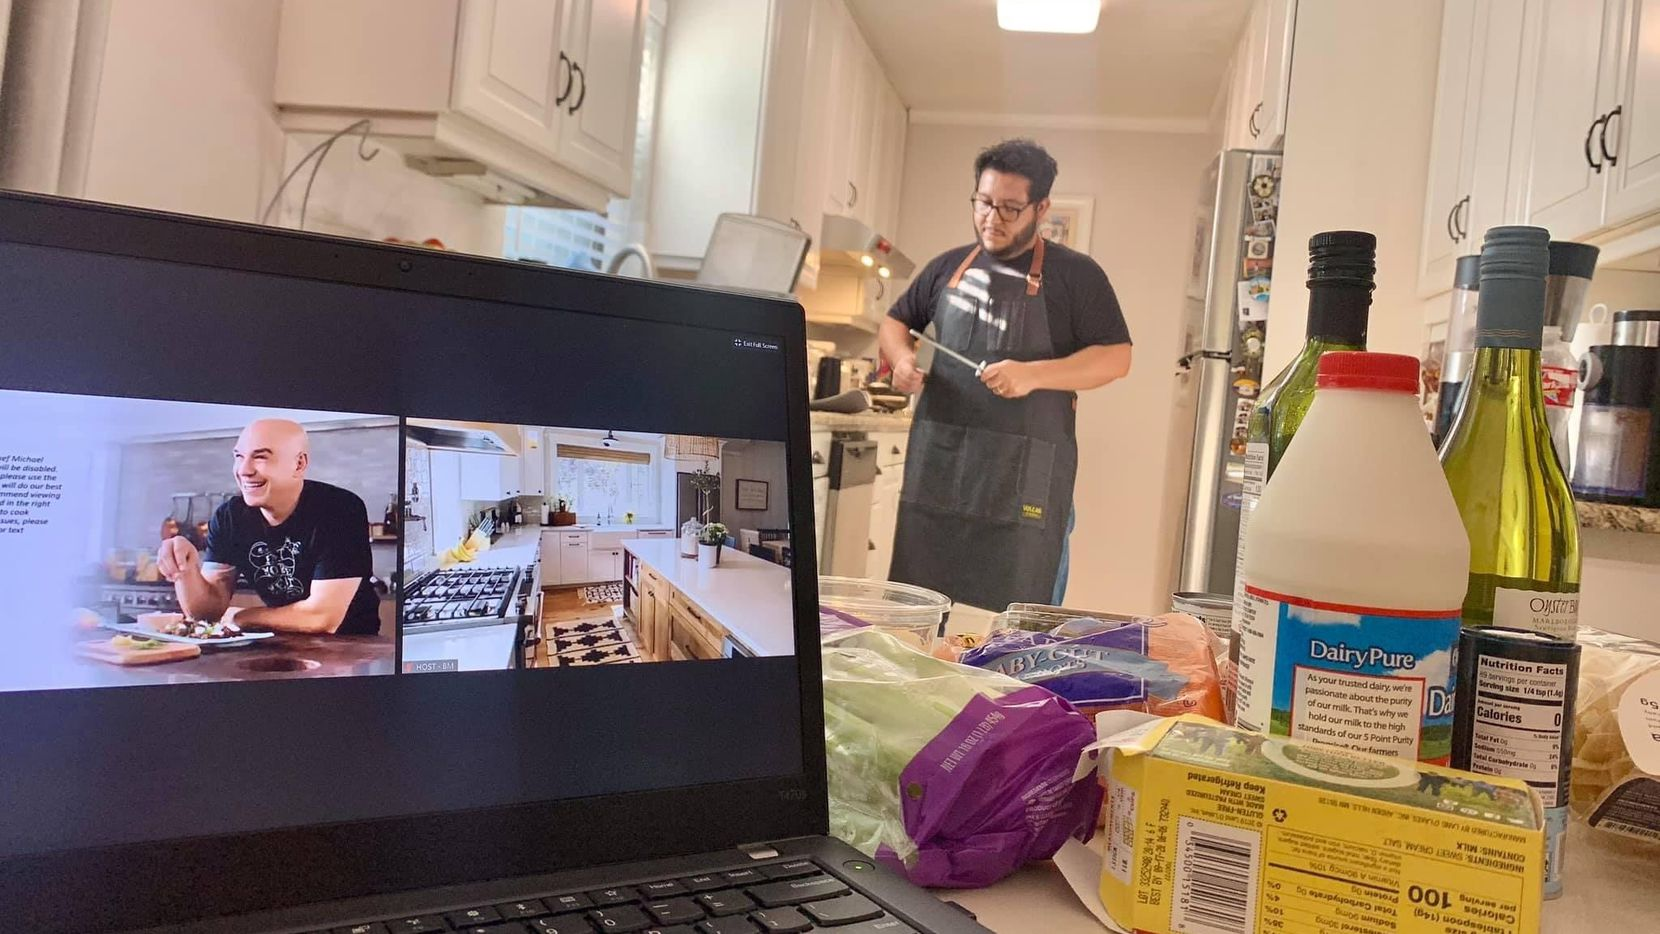 On July 30, New York Life Insurance Company's Dallas-Fort Worth office teamed up with Iron Chef Michael Symon for a live virtual cooking experience. Workers in their home kitchens cooked up Bolognese with Fresh Pappardelle. At partner Paloma Alvarado's house, her husband, Joel Gomez, got in on the action.